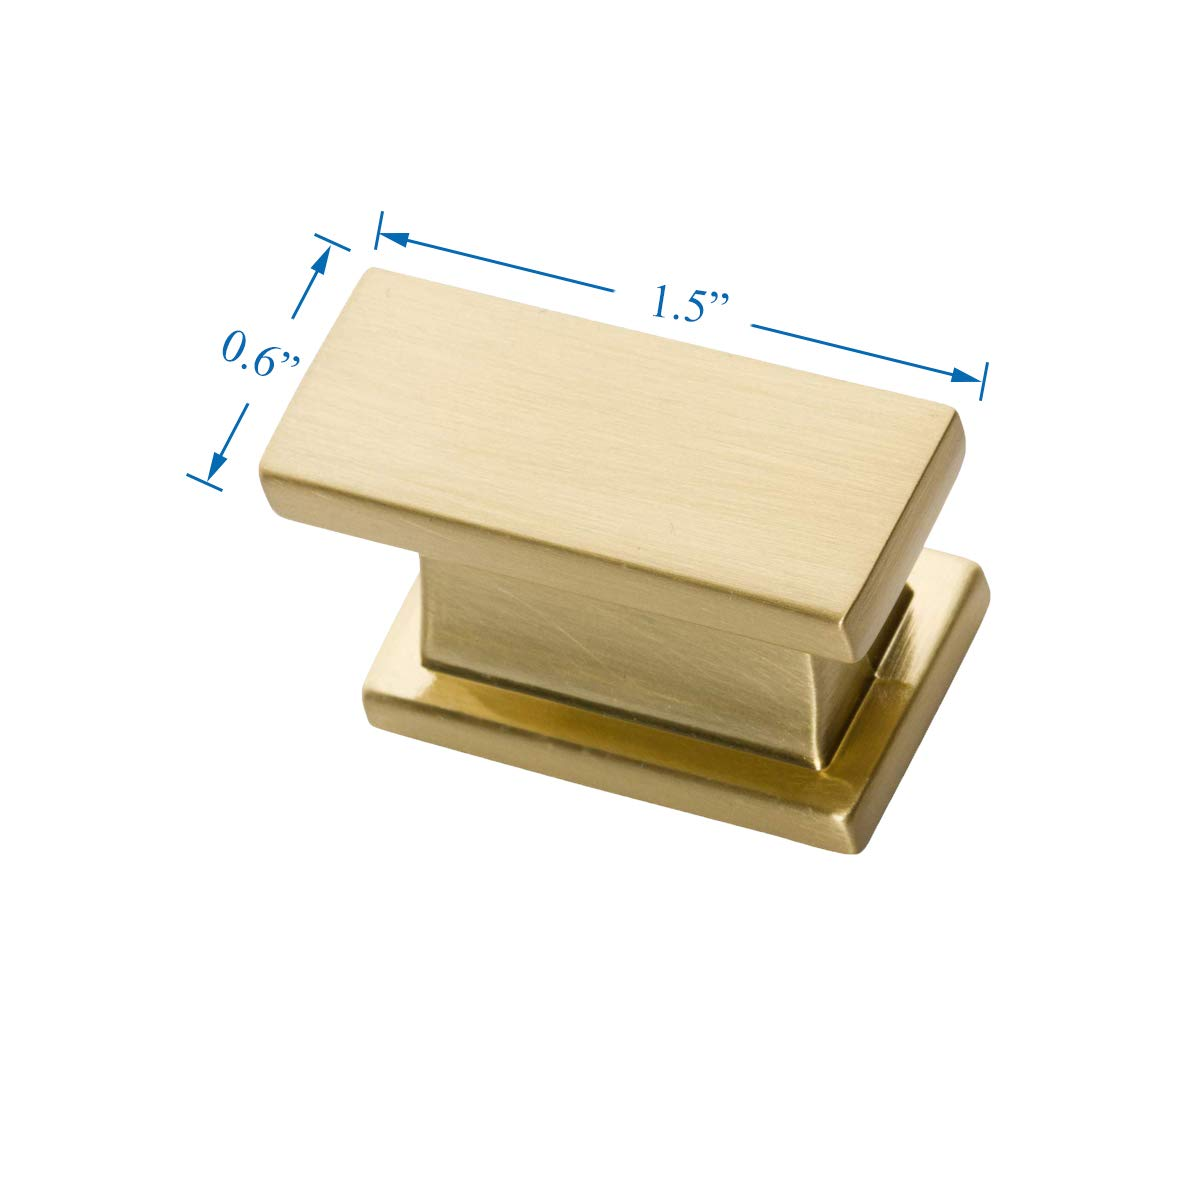 Southern Hills Satin Brass Cabinet Knobs - Rectangle - Pack of 5 - Brushed Brass Kitchen Cabinet Knobs - Cabinet Hardware Pulls - SHKM001-BRS-5 by Southern Hills (Image #3)